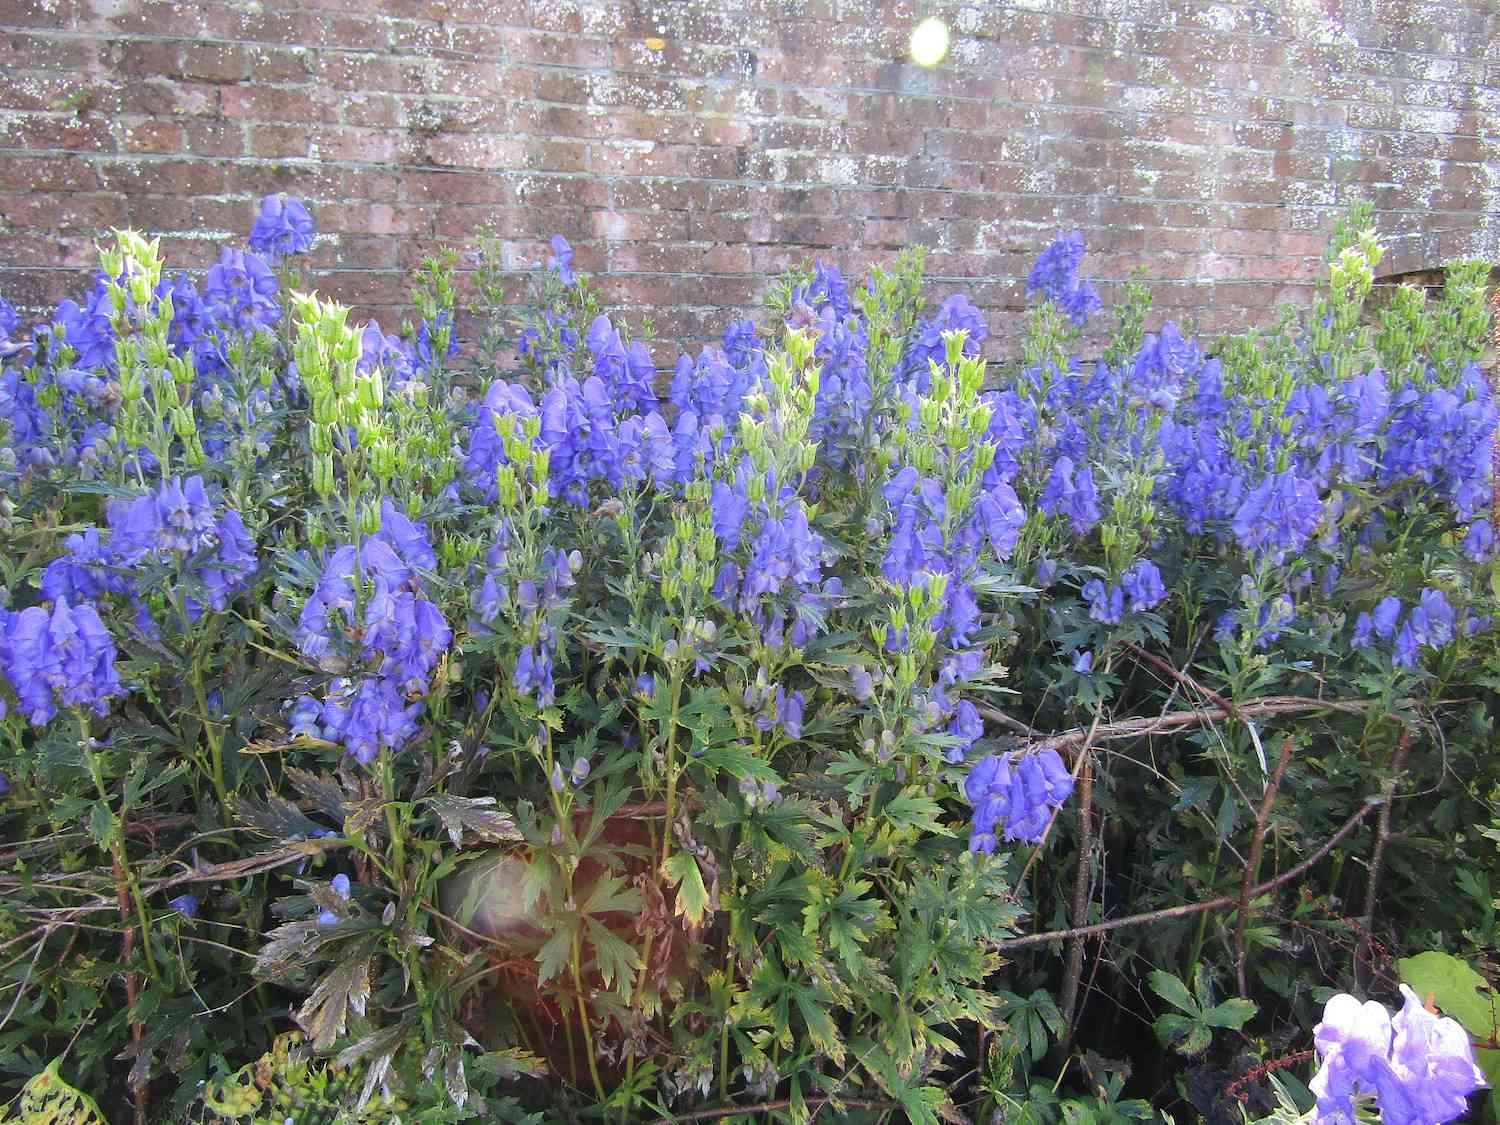 Blueish-purple flowers interspersed among green leaves in front of a brick wall